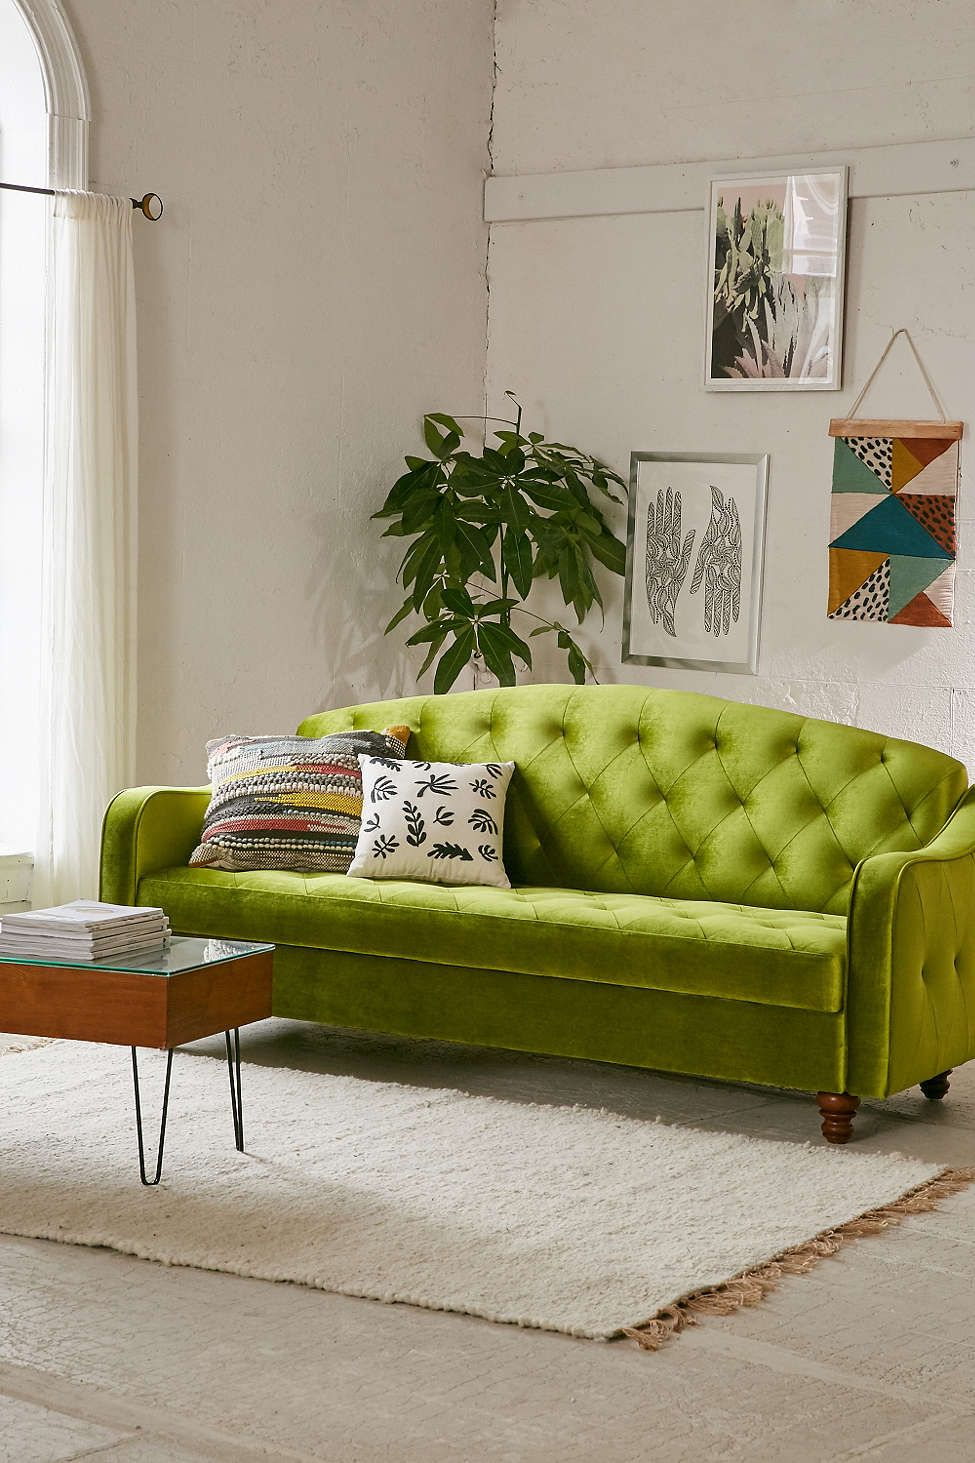 Sofa Vs Couch The Great Seating Debate Decoist Sofa